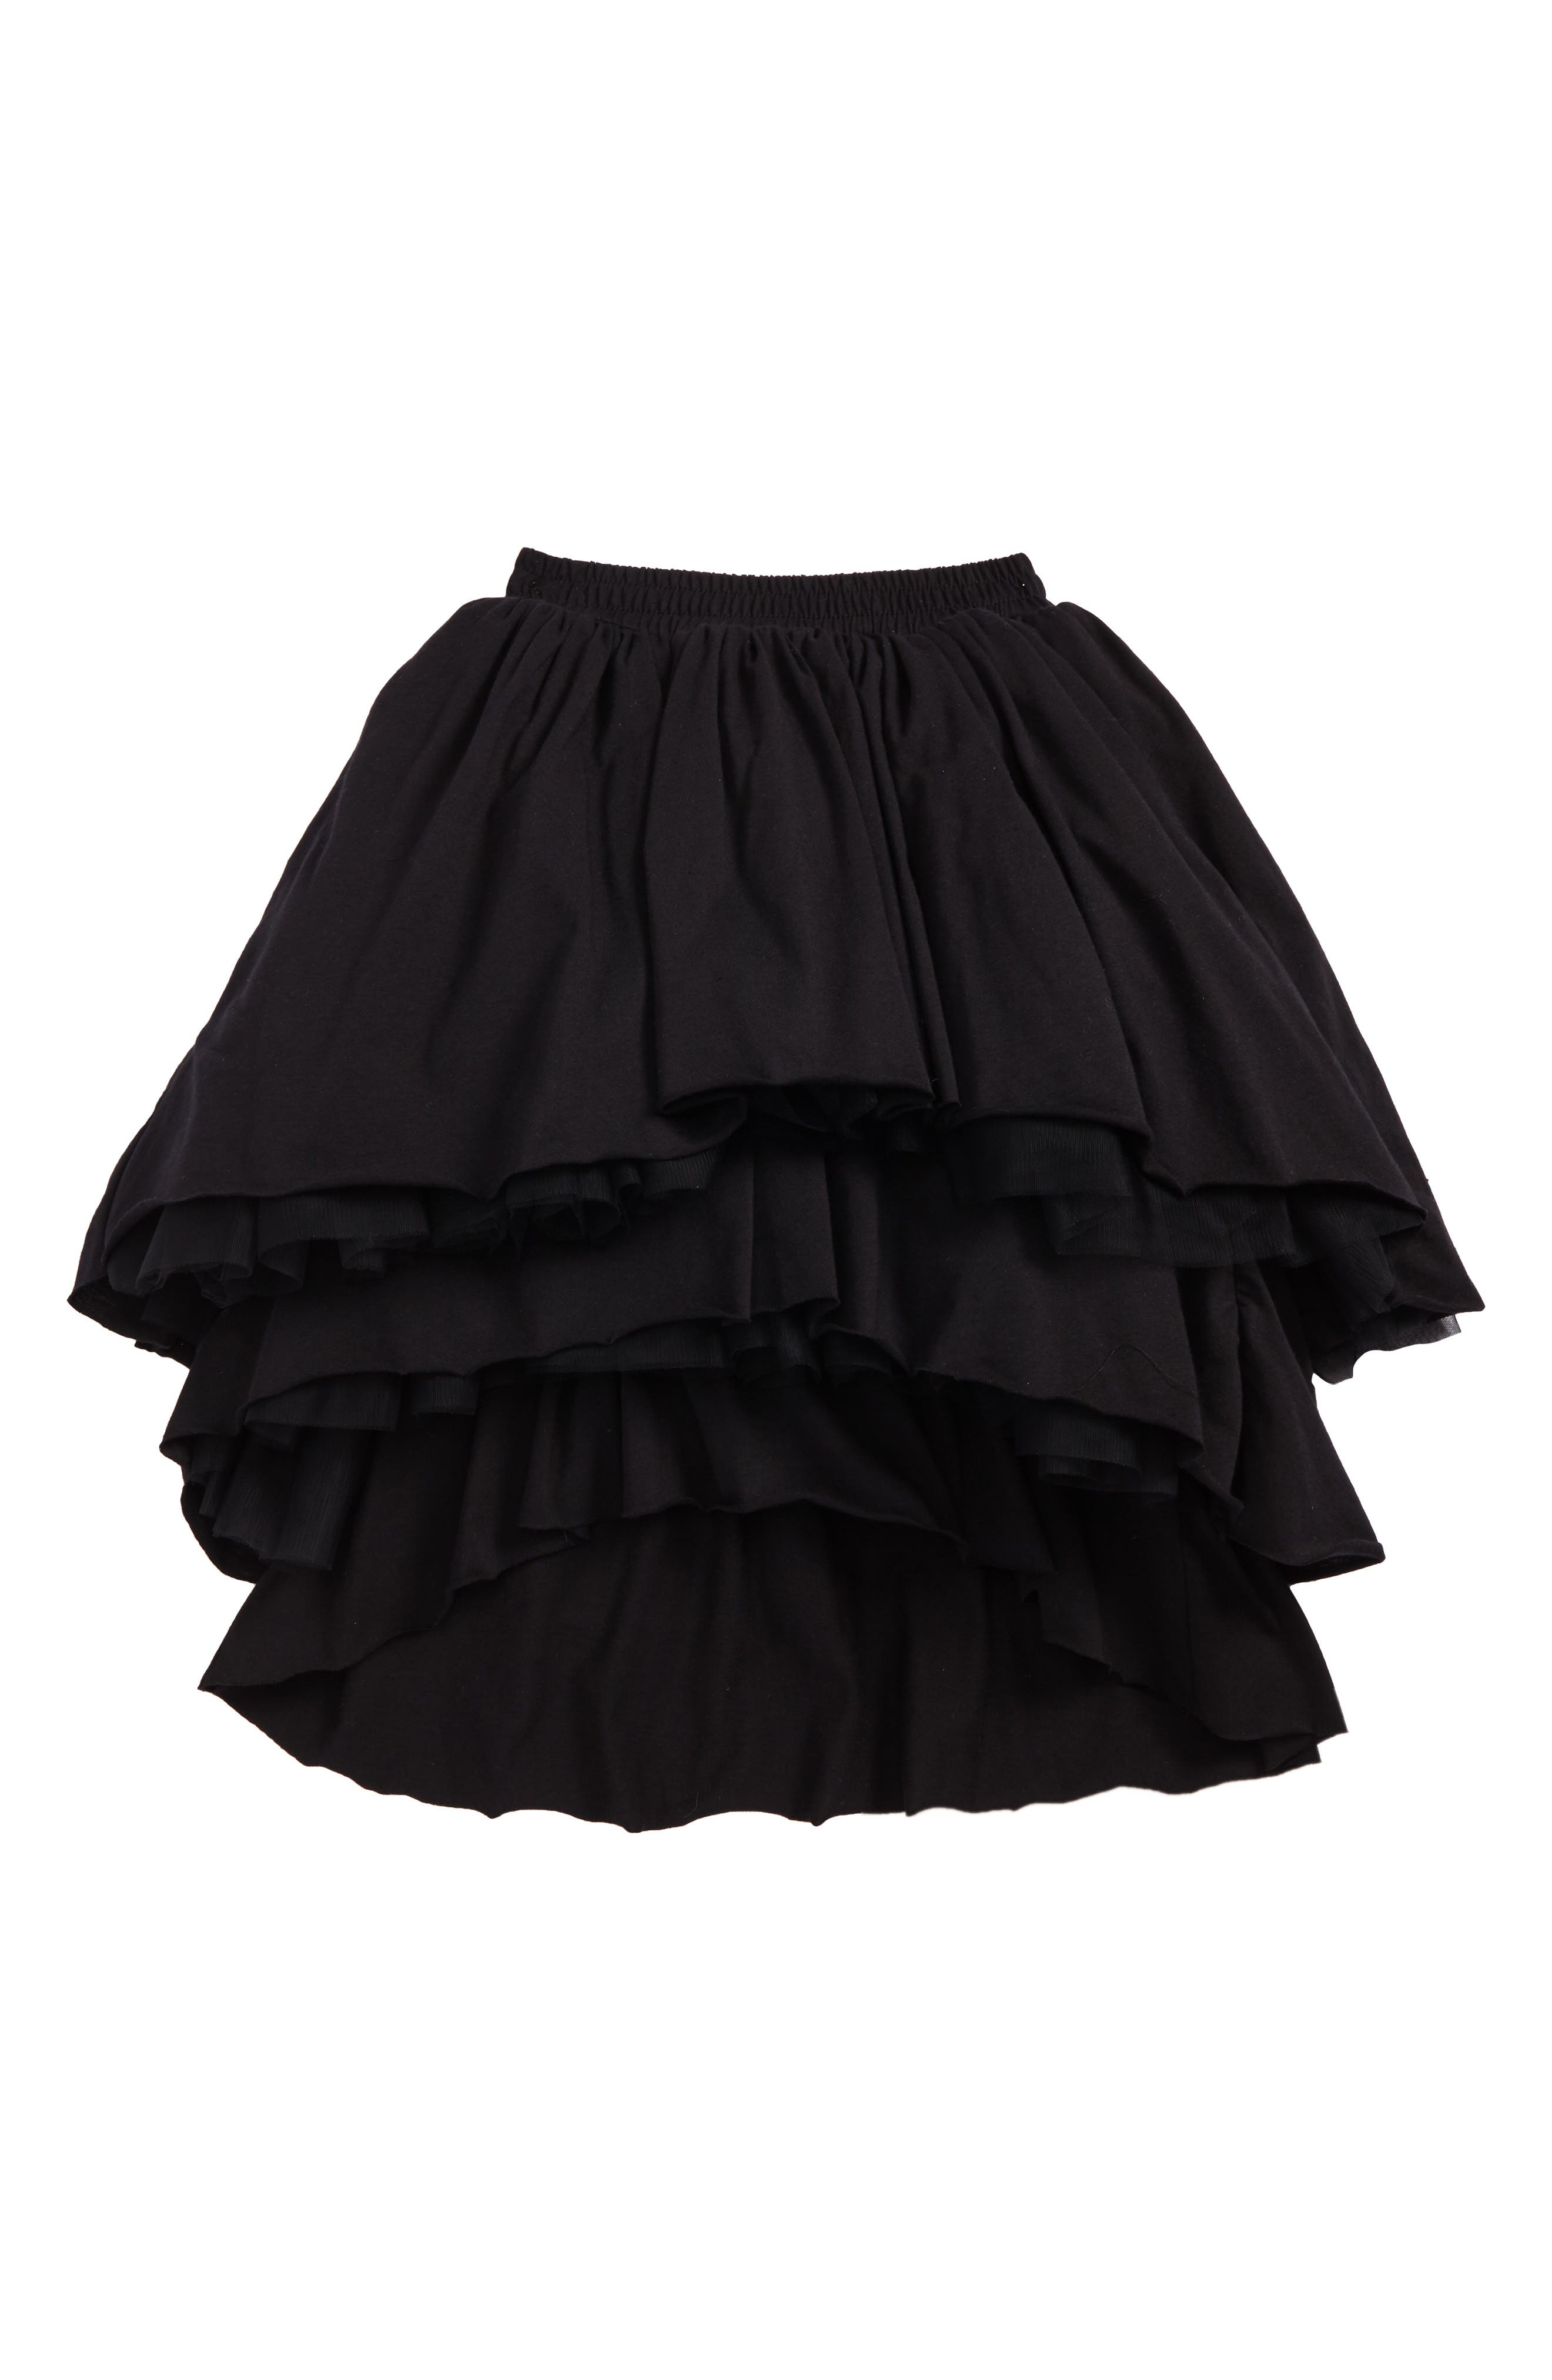 Layered Tulle Skirt,                         Main,                         color, Black